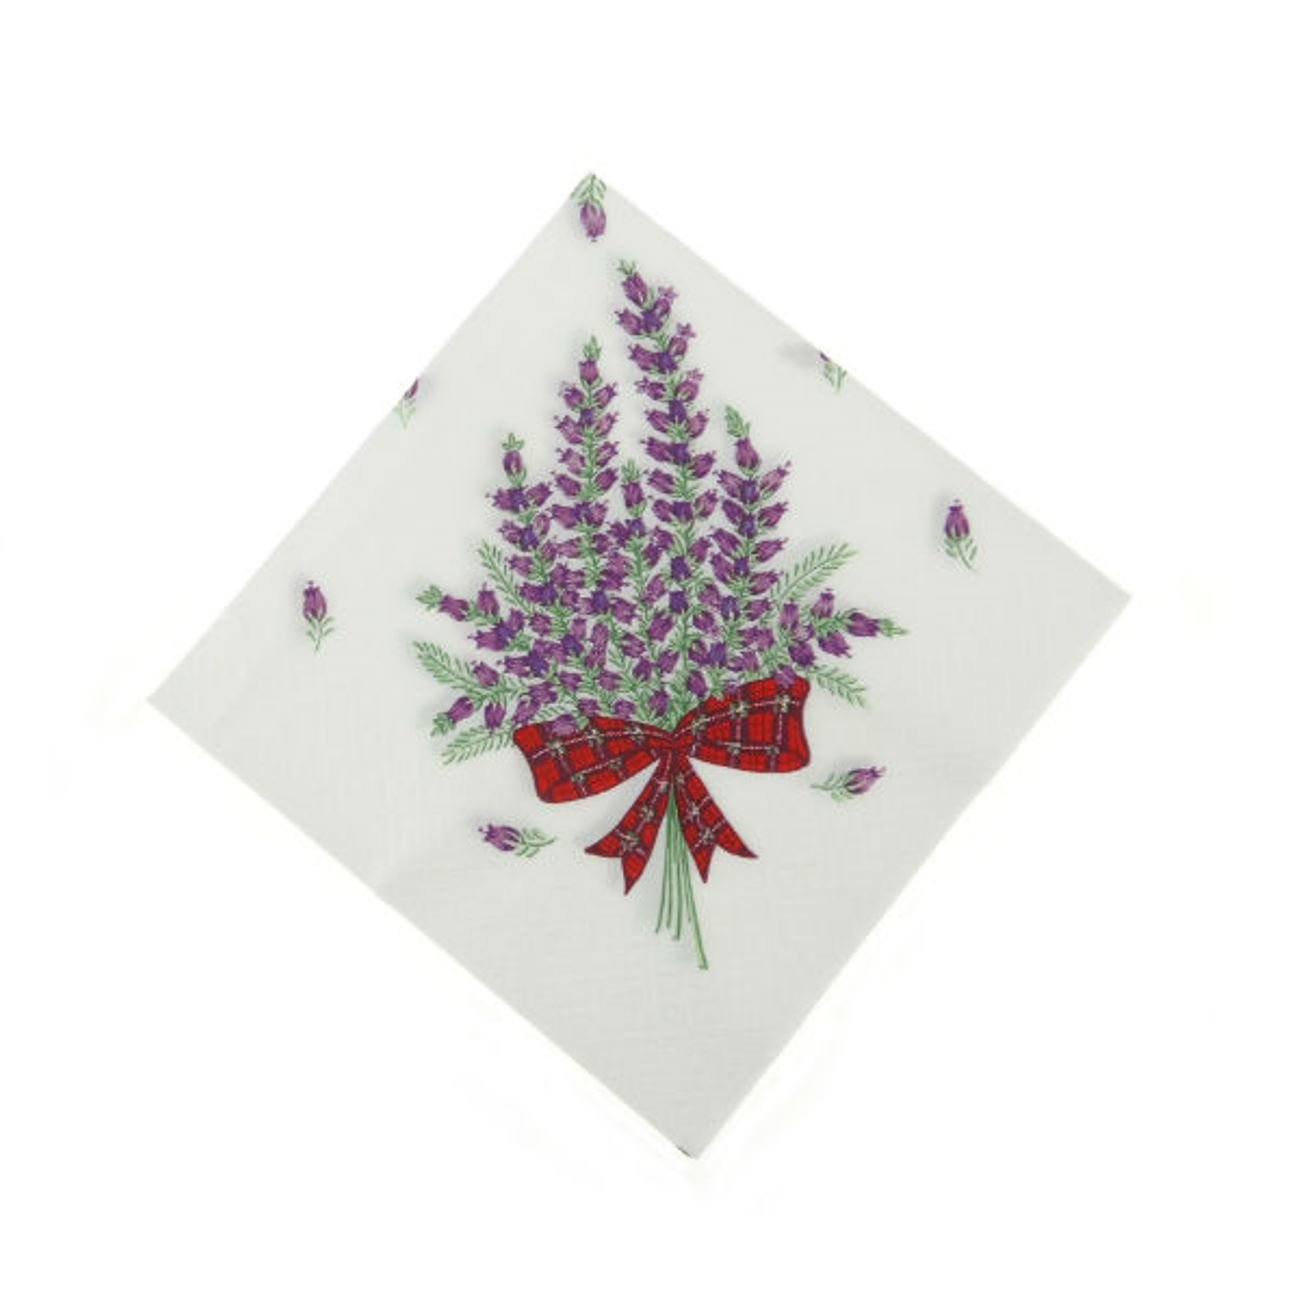 20 Pack Scottish Heather in a Tartan Bow Design Paper Napkins - Made by Glen Appin